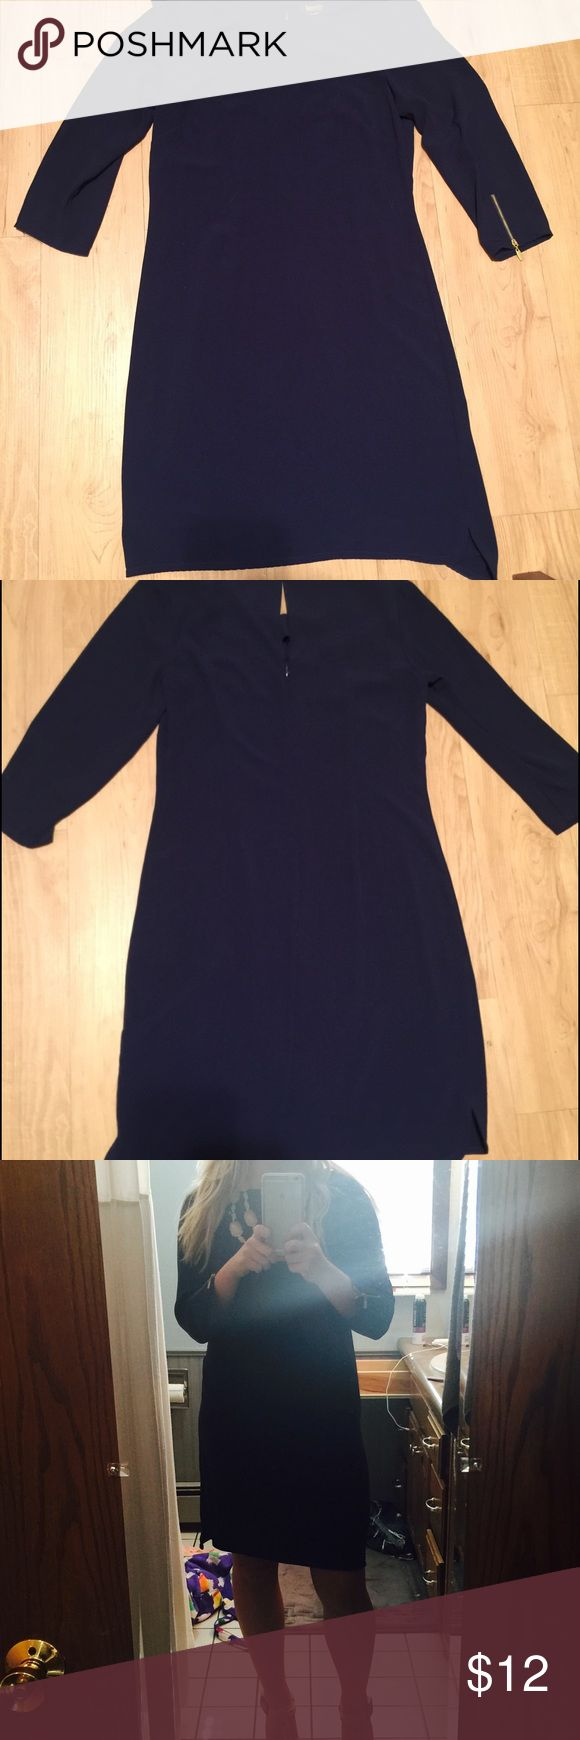 Laundry Navy 2/3 sleeve Dress Very flattering navy Laundry dress. Size 8 and fits like medium. Hits below the knee Laundry by Shelli Segal Dresses Long Sleeve